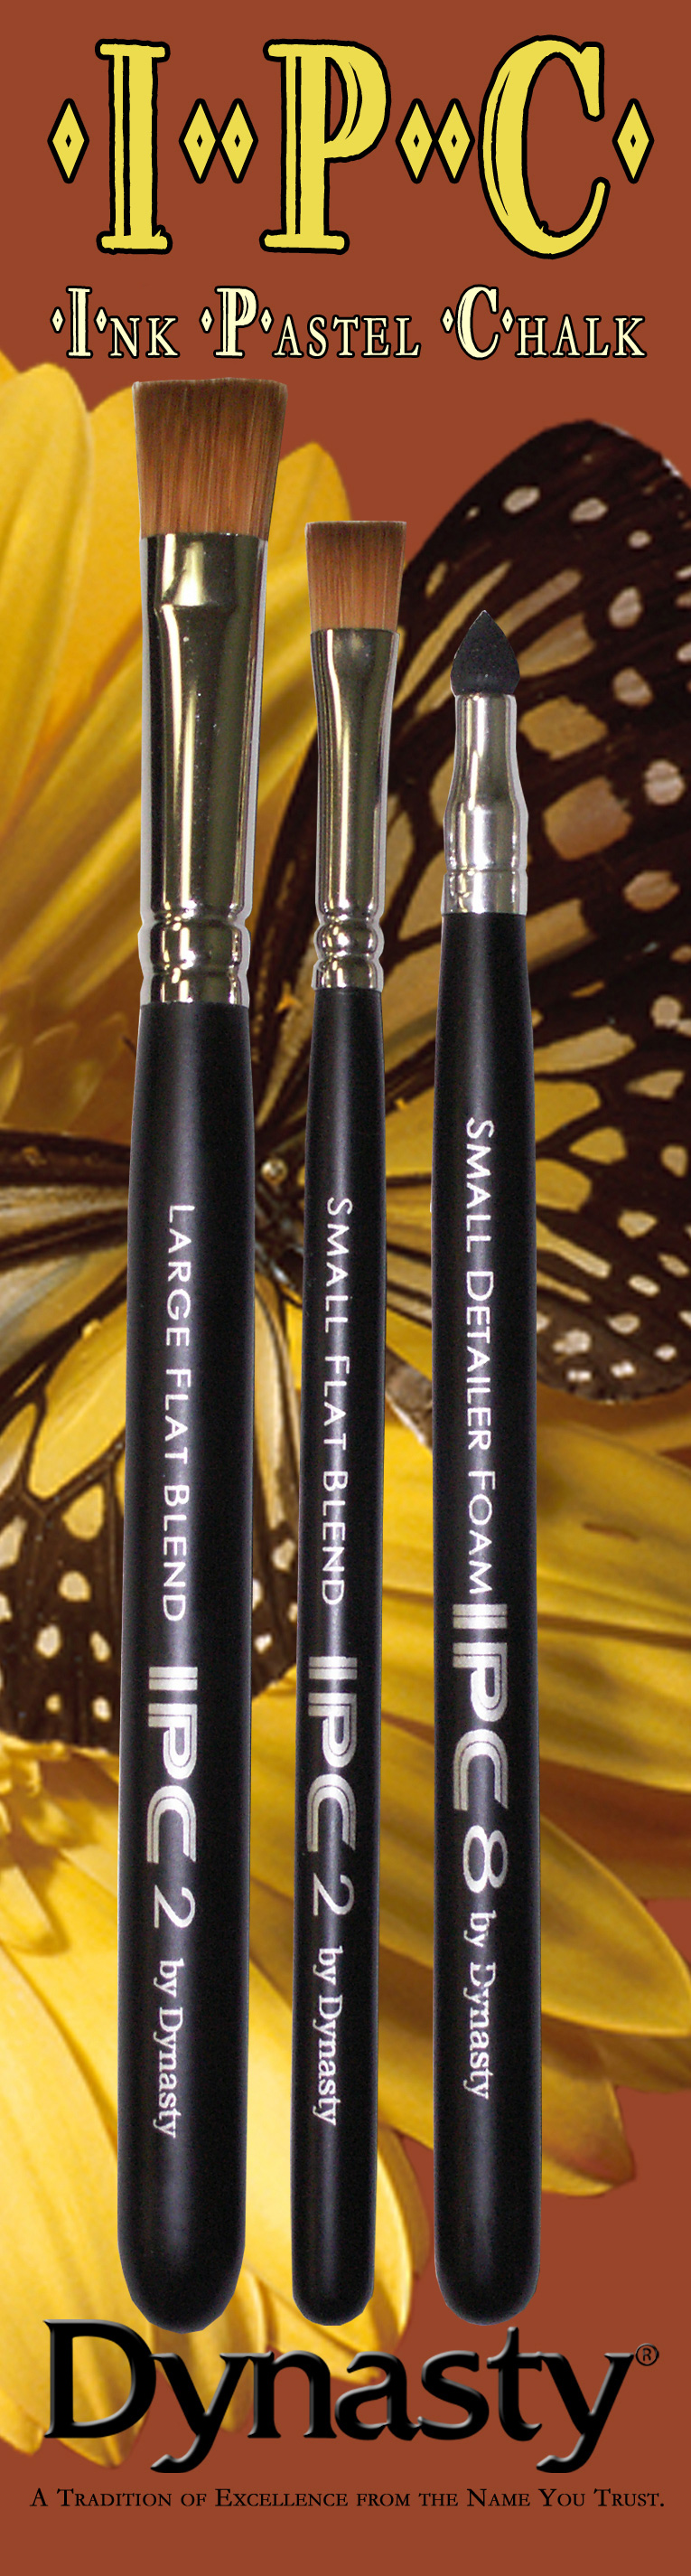 Dynasty Ipc Brush Set B- Blenders/Detail